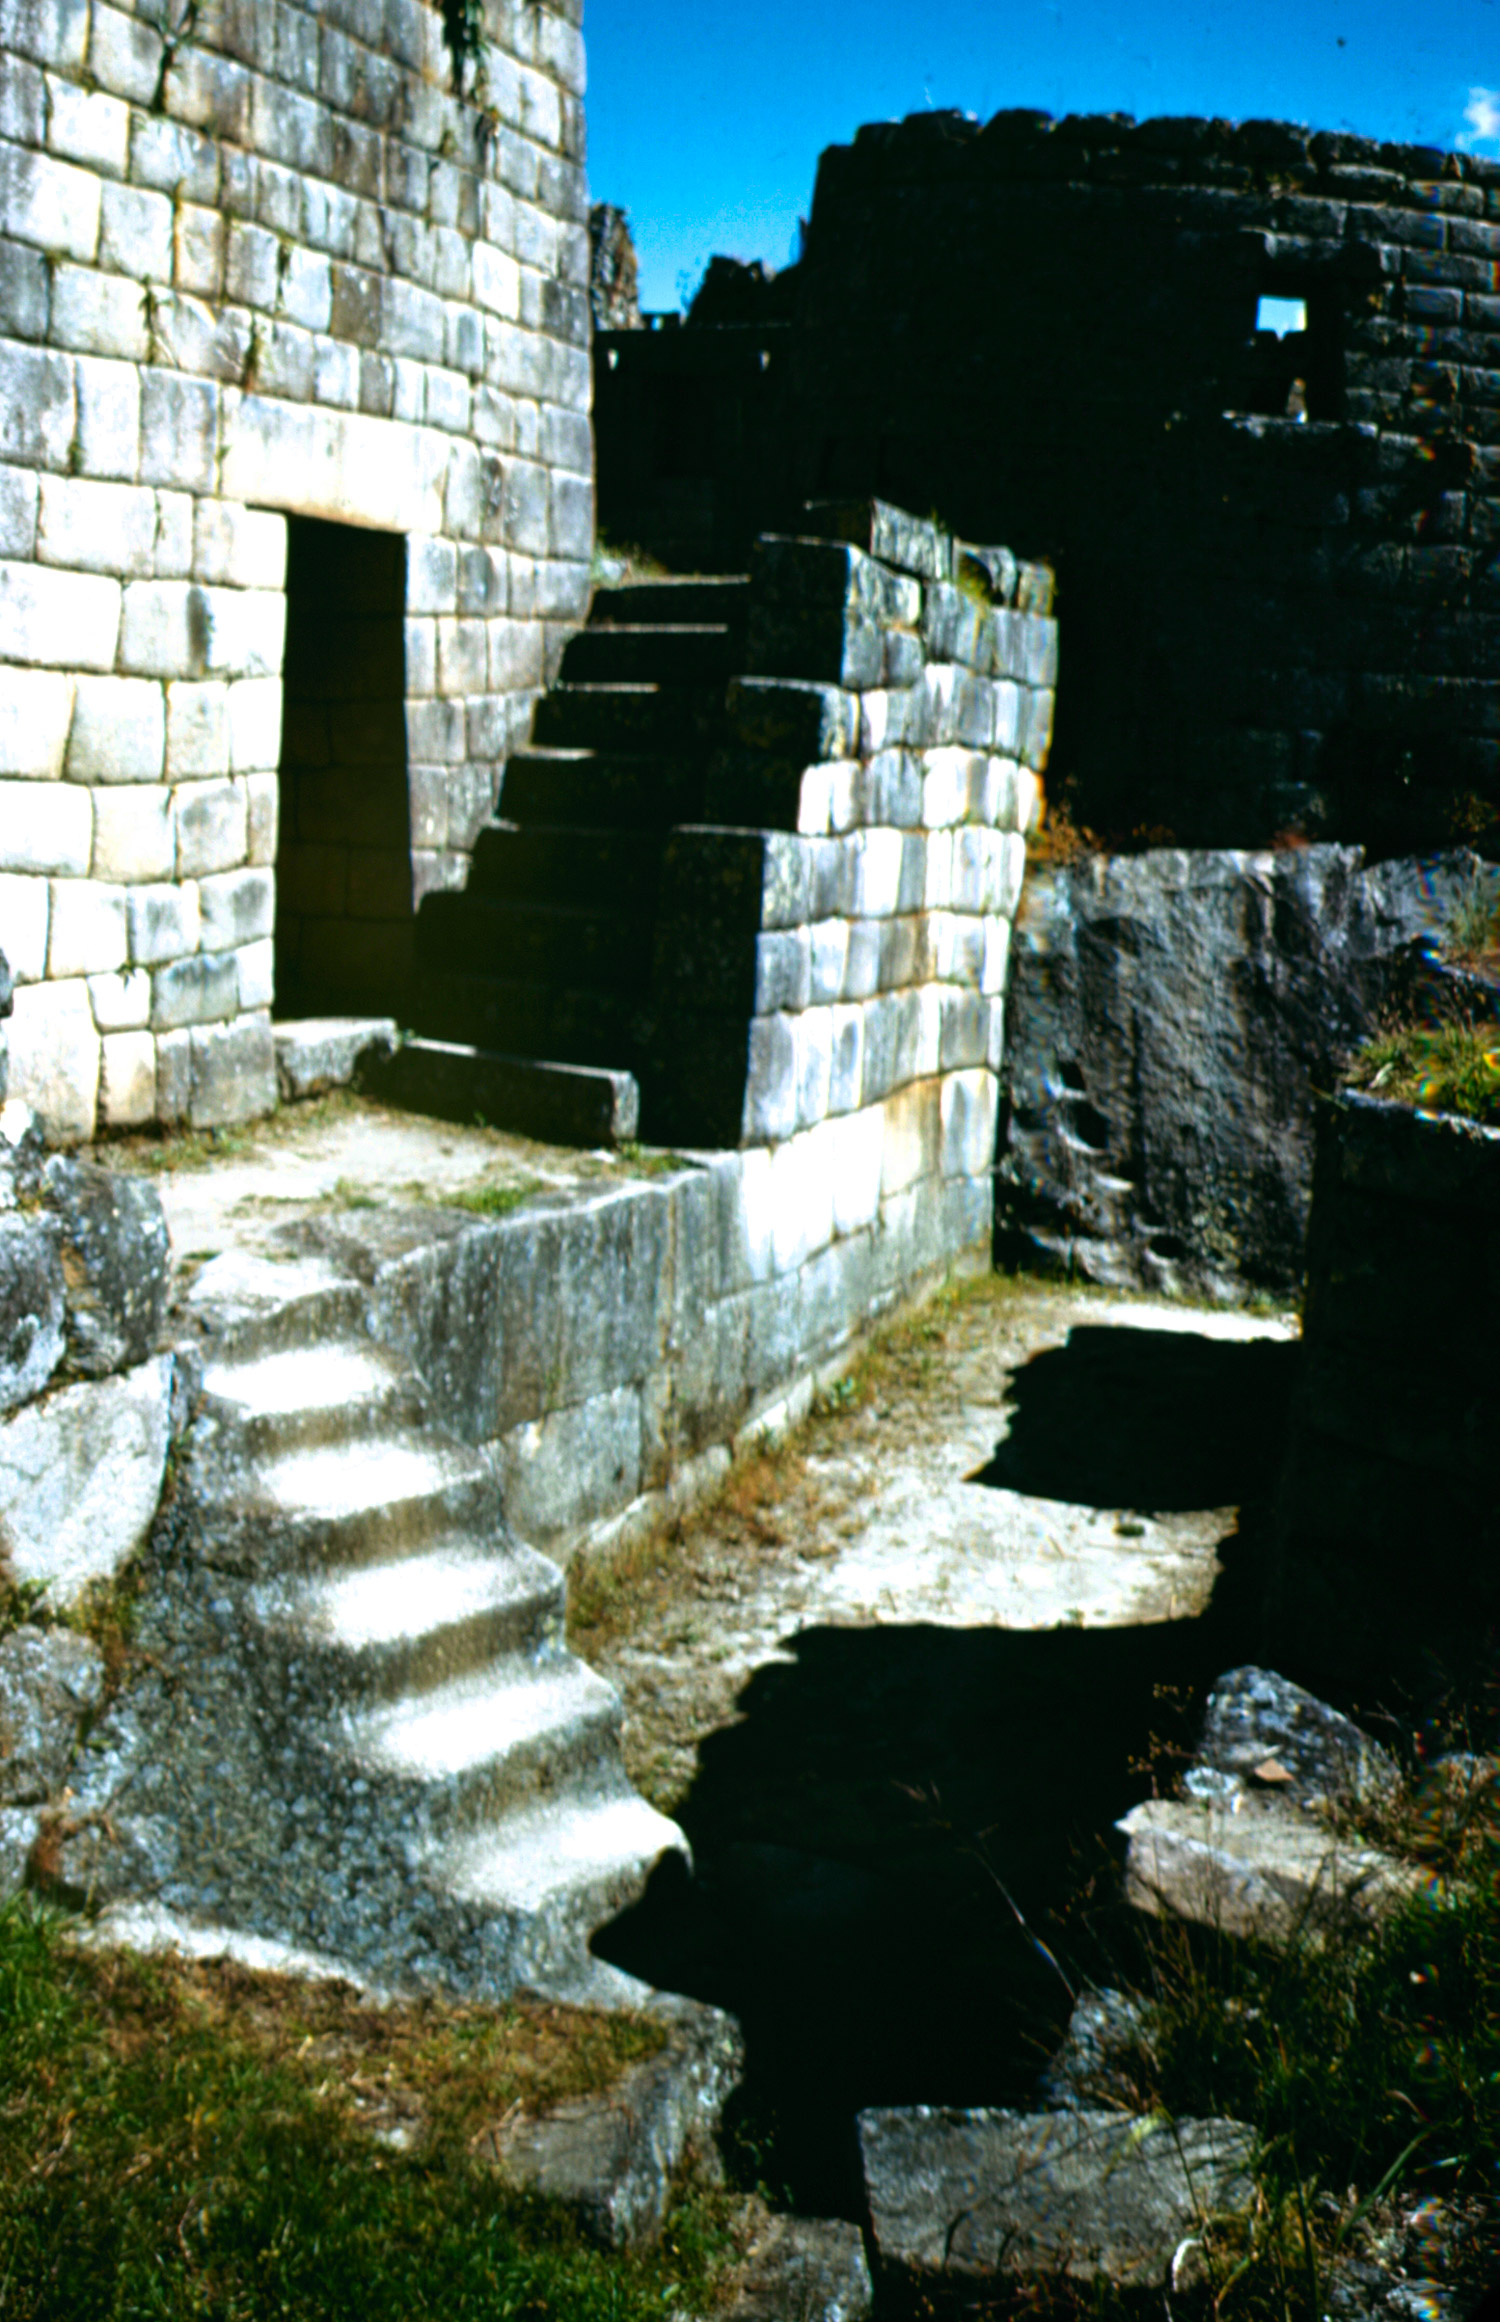 <b>Caption from LIFE.</b> Princess tower at right looks straight down on the Urubamba River. The stairway at left is cut into the solid rock, all hard granite. This is at town of Machu Picchu.